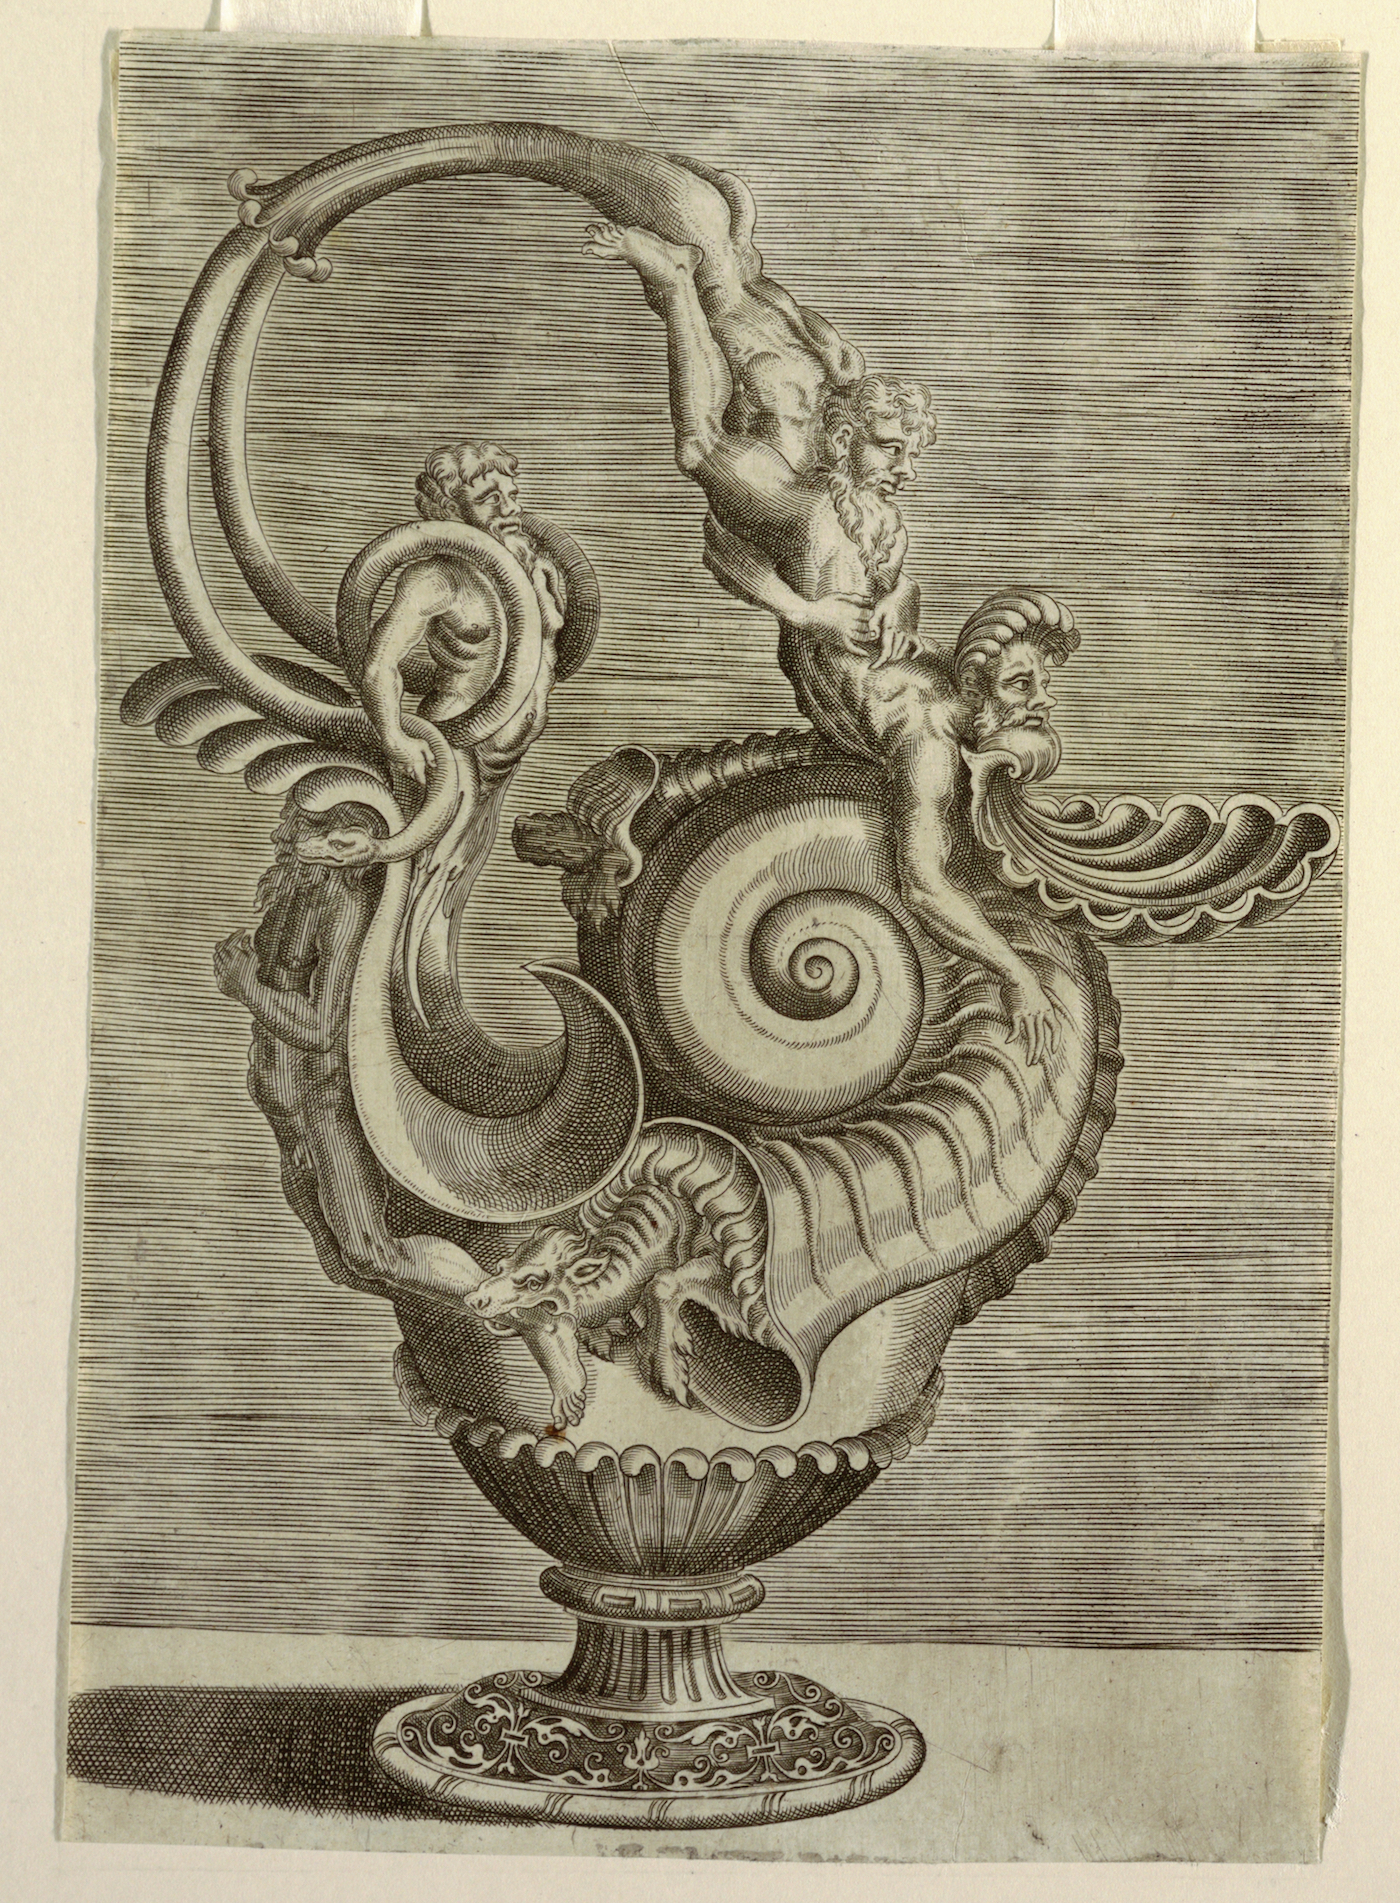 Print by Cornelis Floris II from a series of designs for ewers and vessels (1548) (all images via Cooper Hewitt, Smithsonian Design Museum)